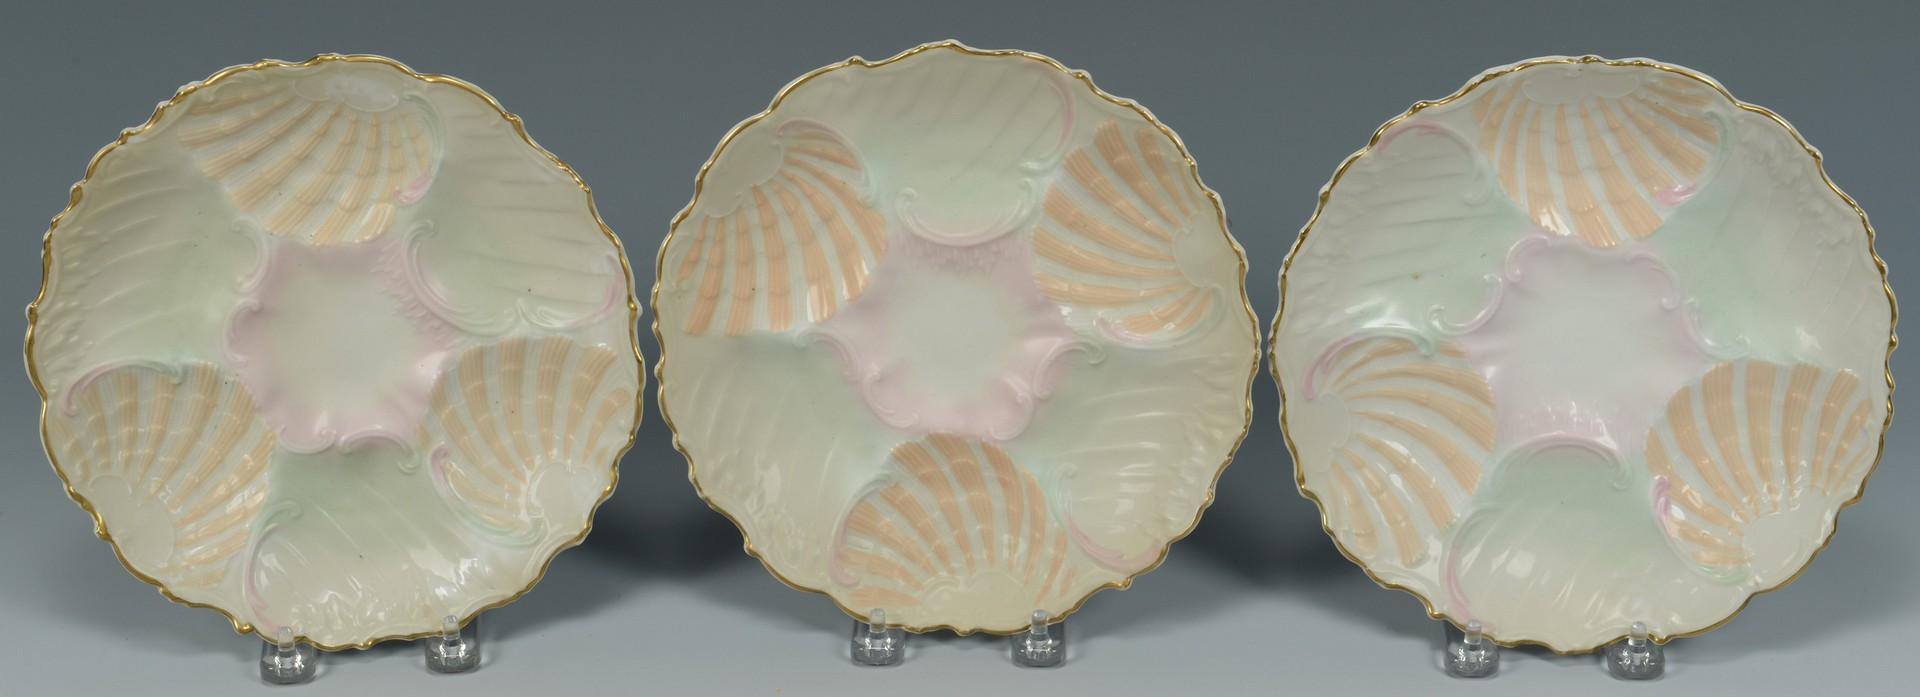 Lot 3594286: 12 Oyster Plates (11 plus 1)